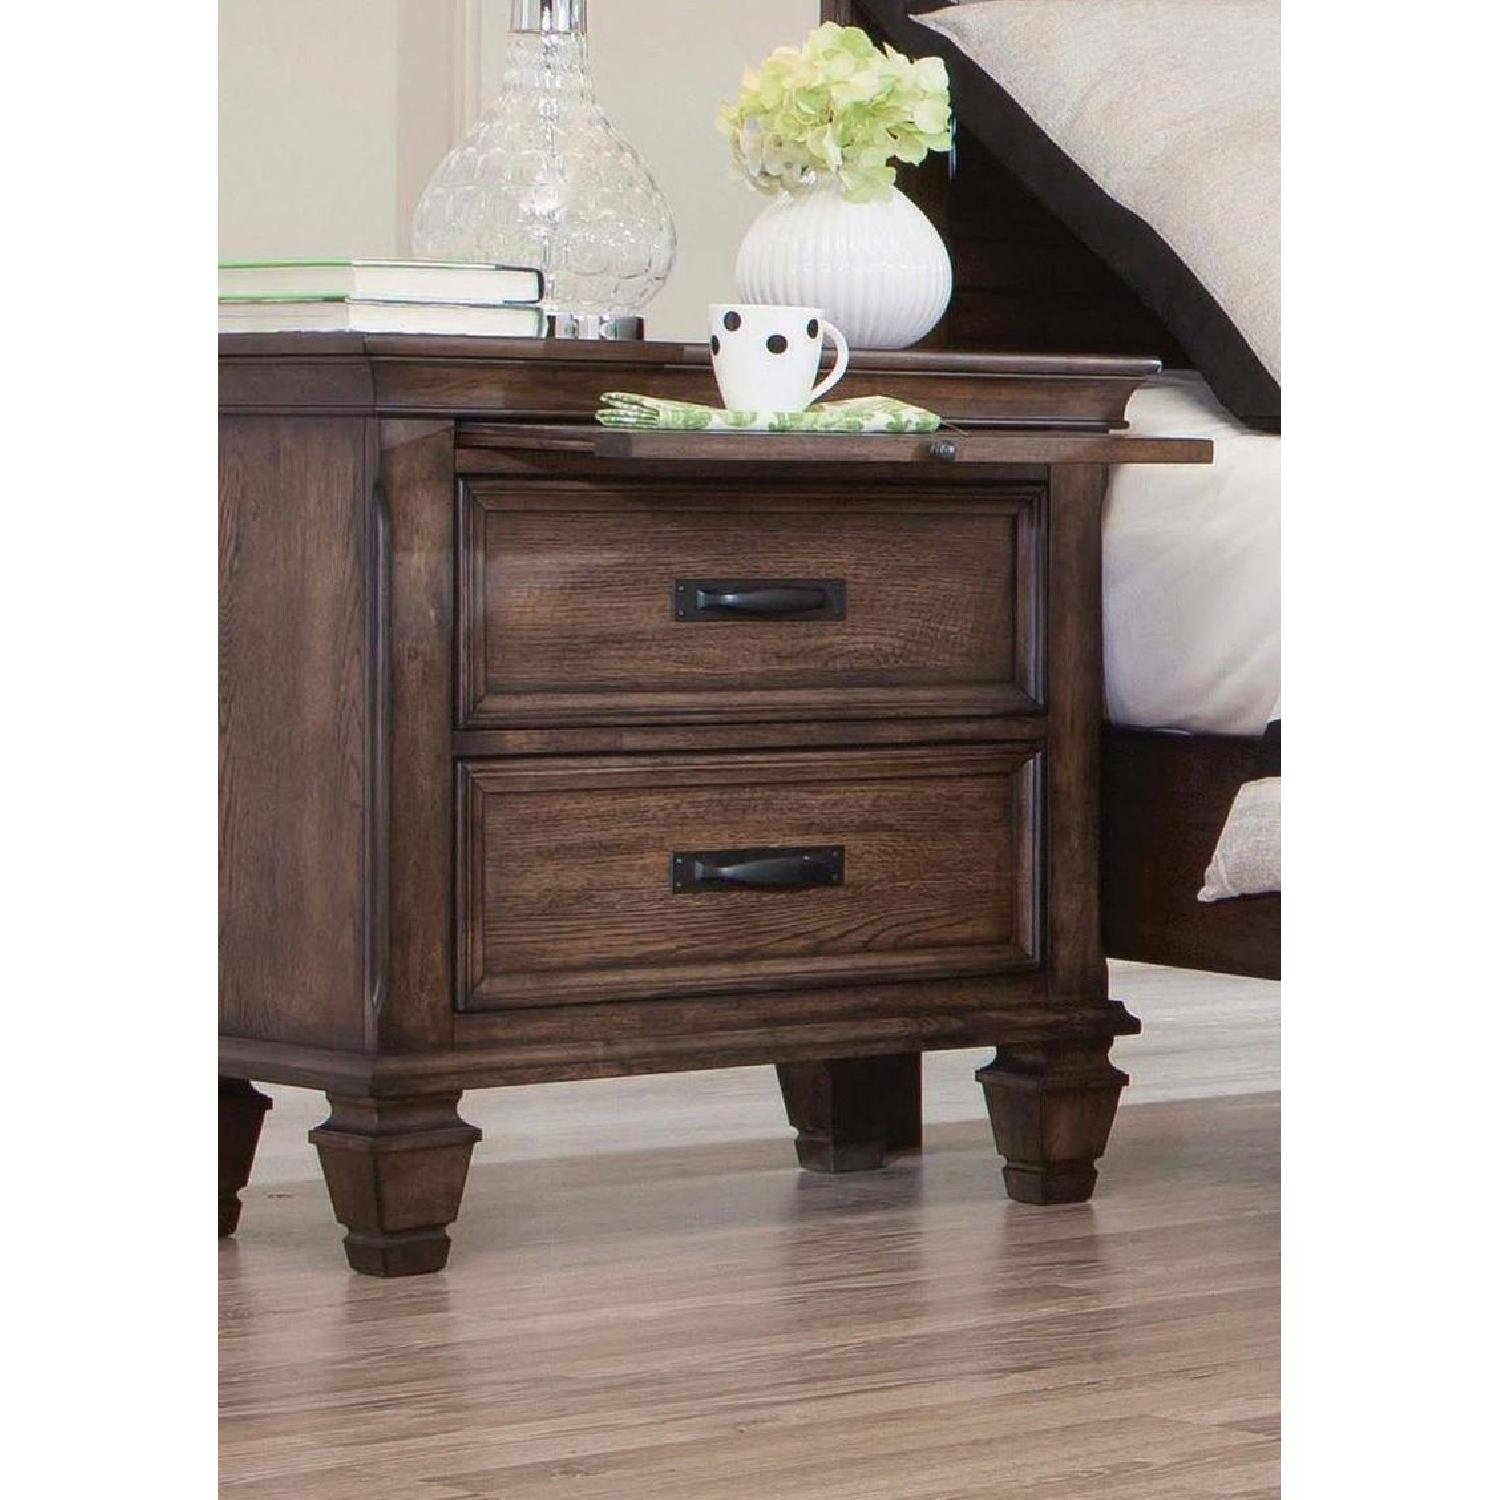 Glam Style TV Console w/ Mirror Accent - image-15